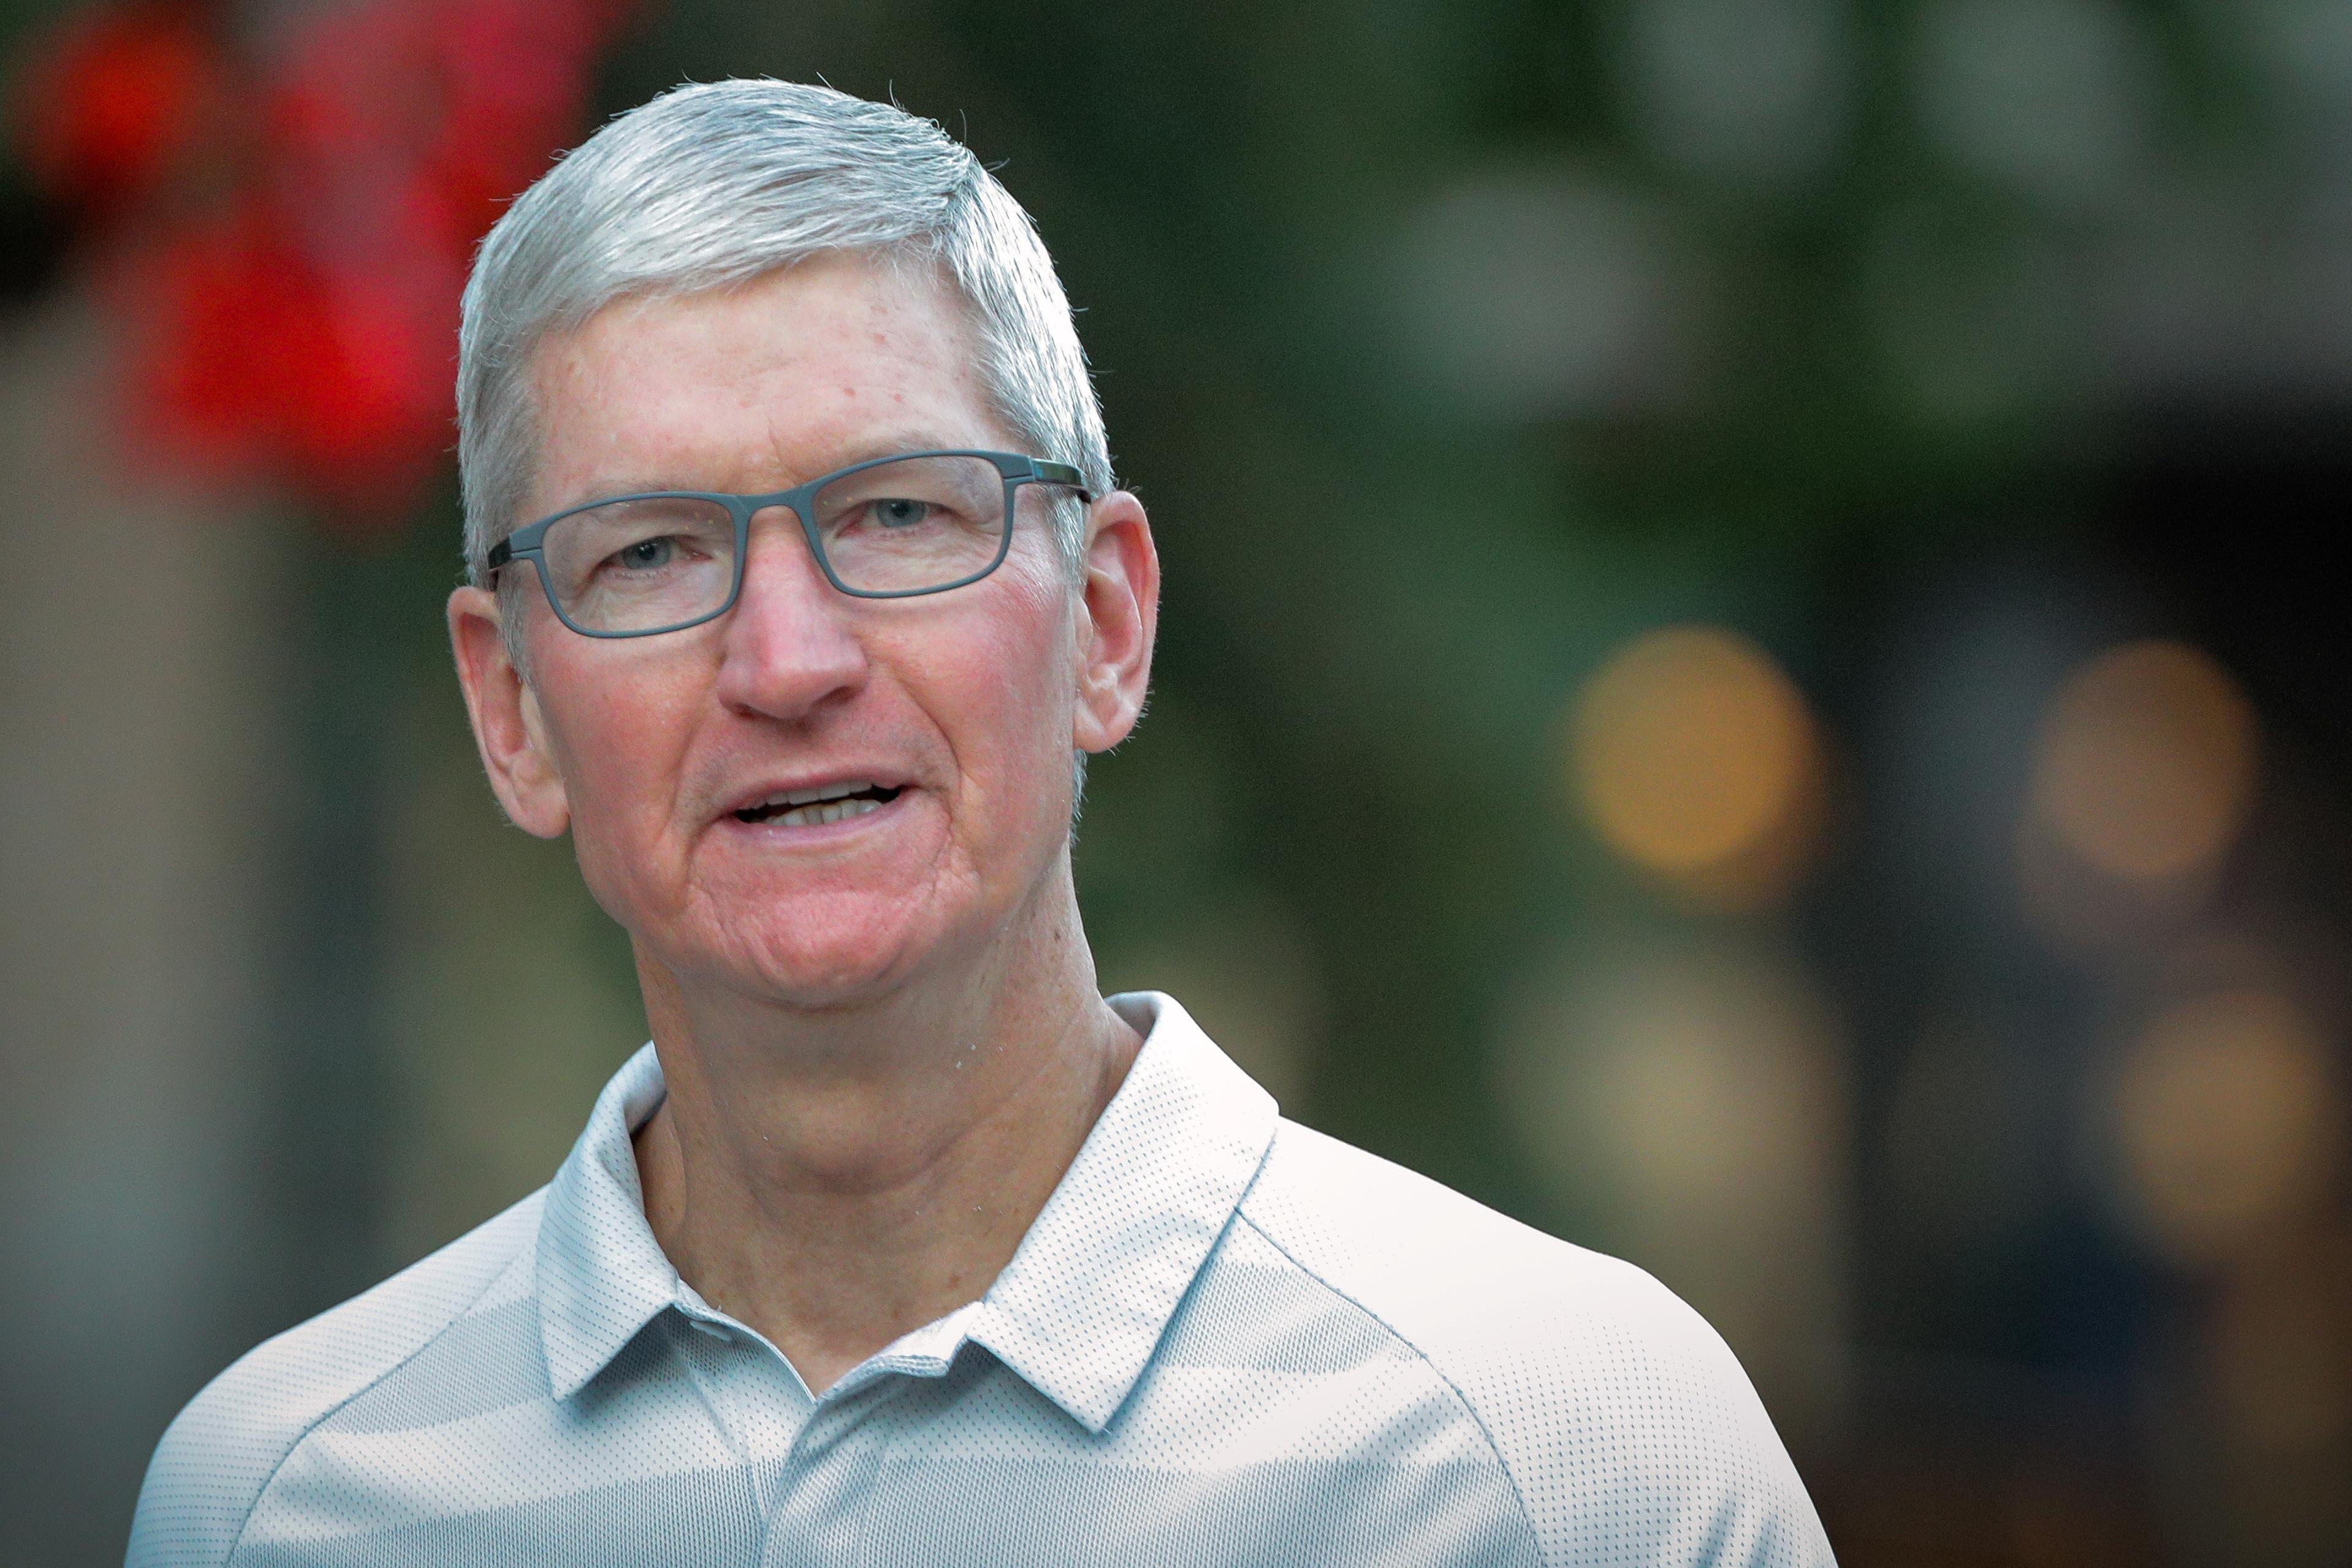 Apple CEO warns Trump about China tariffs, Samsung competition